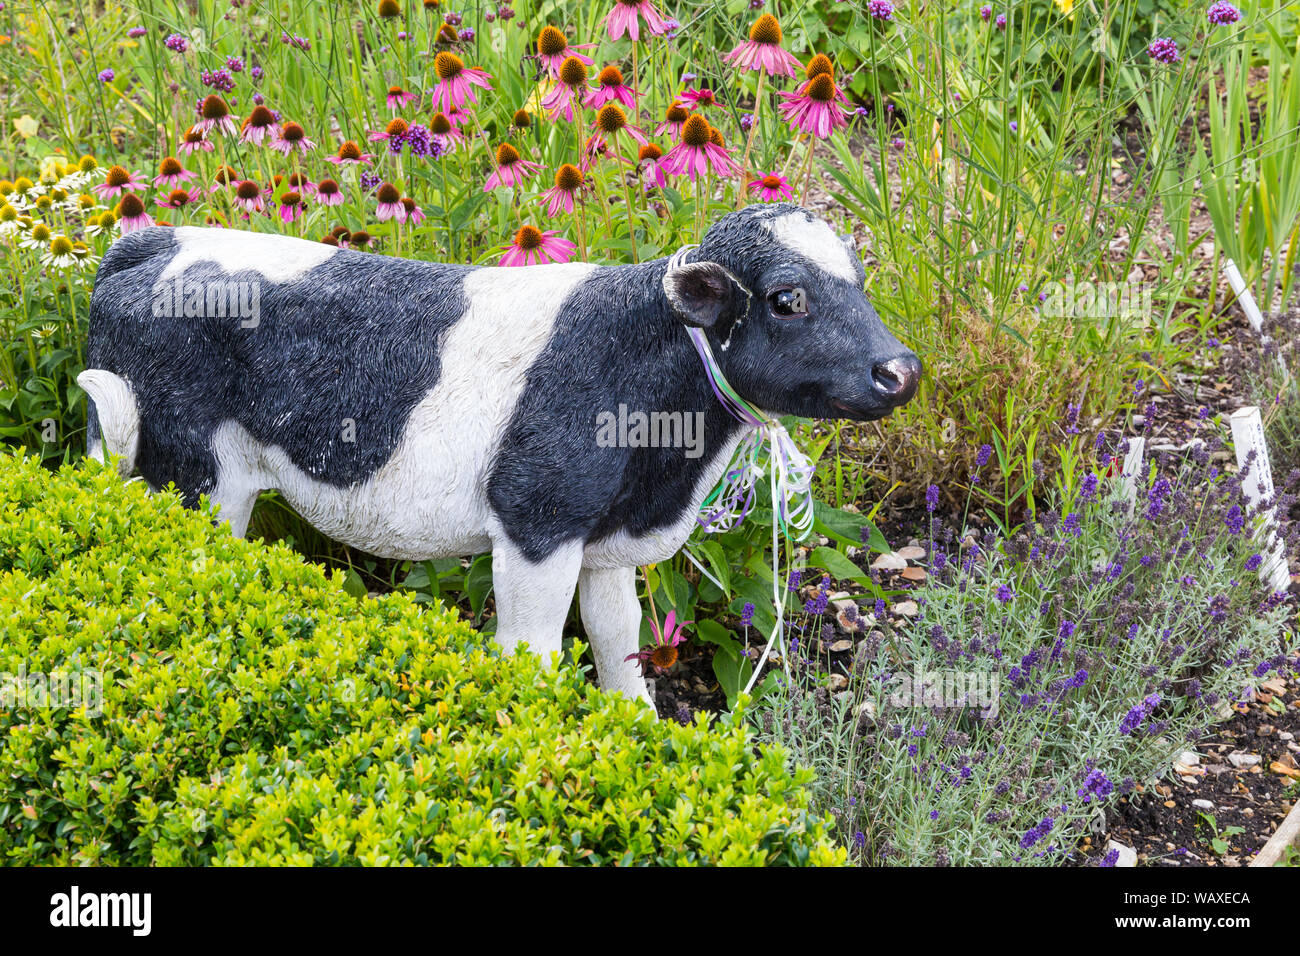 Cow ornament among the flowers at Patrick's Patch, Beaulieu, New Forest, Hampshire UK in August Stock Photo